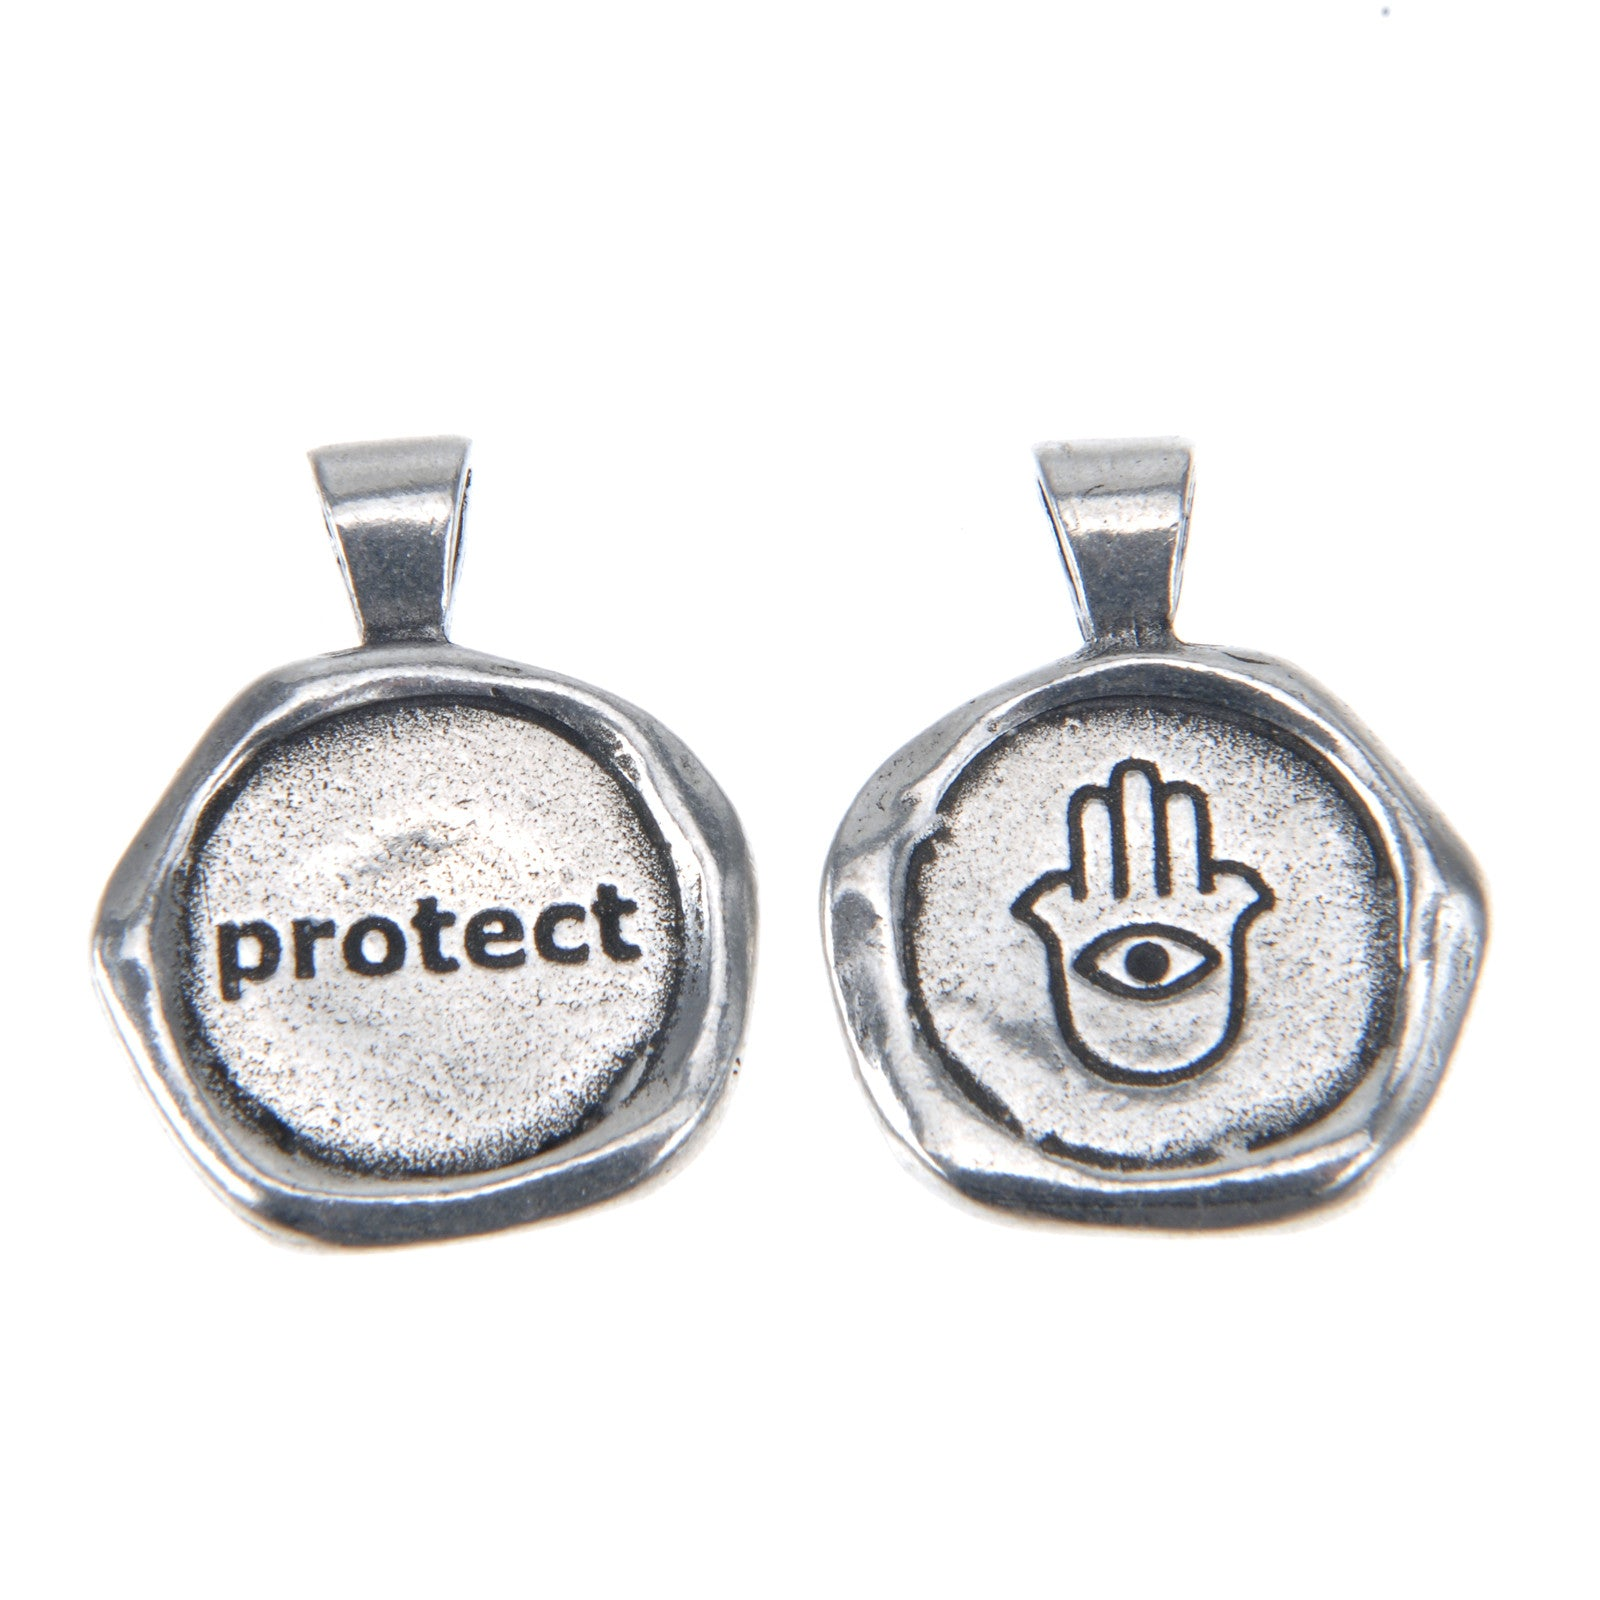 Protect Wax Seal - Whitney Howard Designs